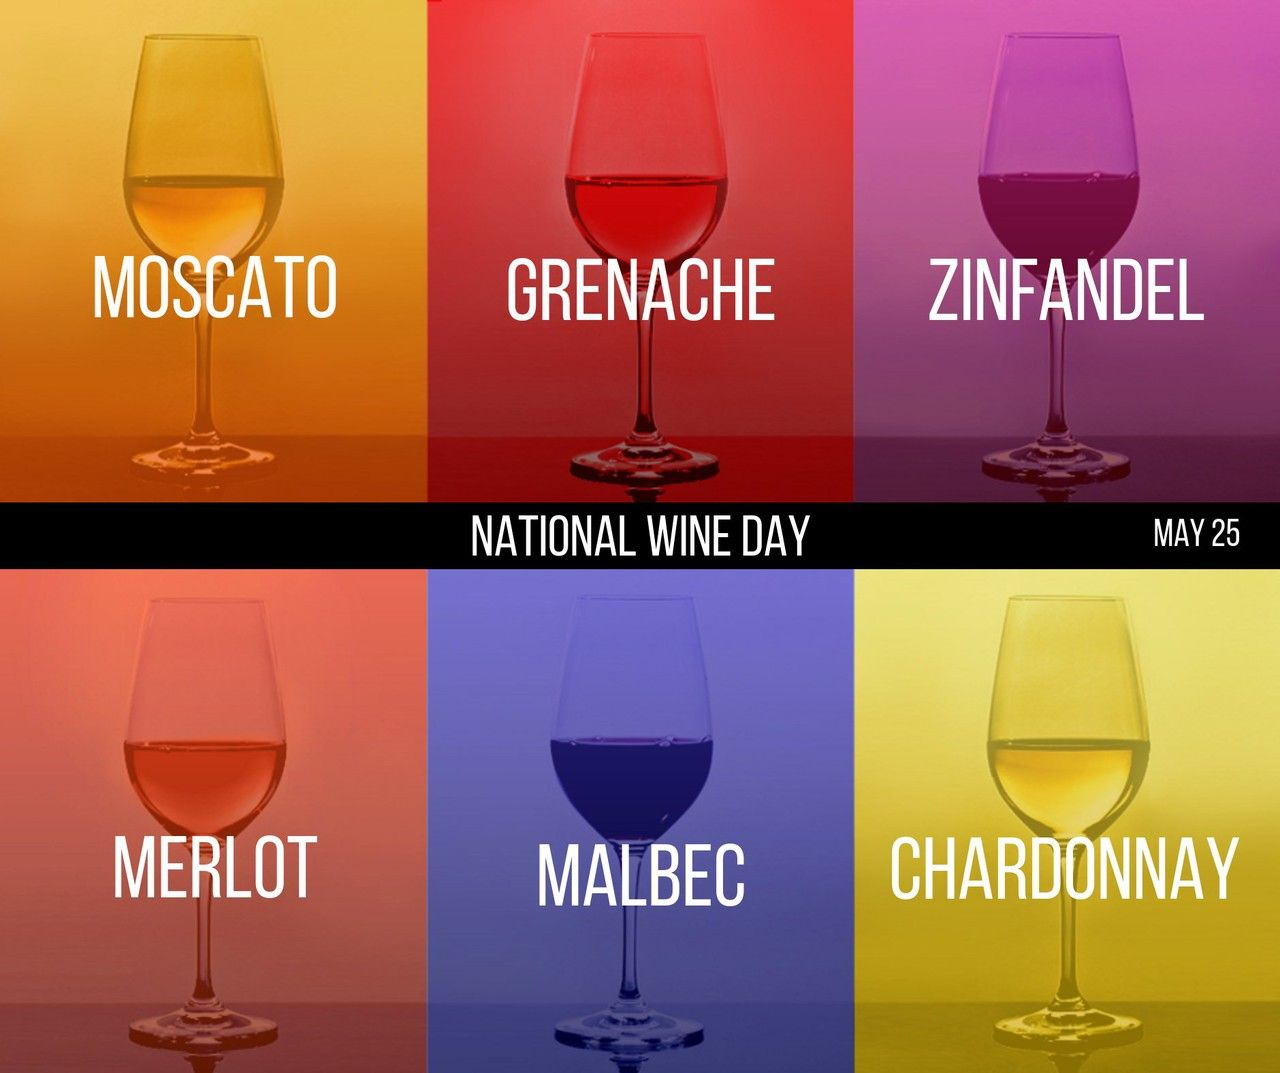 May 25 Nationalwineday What S Your Favorite Type Of Wine Wineday Moscato Types Of Wine Instagram Posts Drink Local